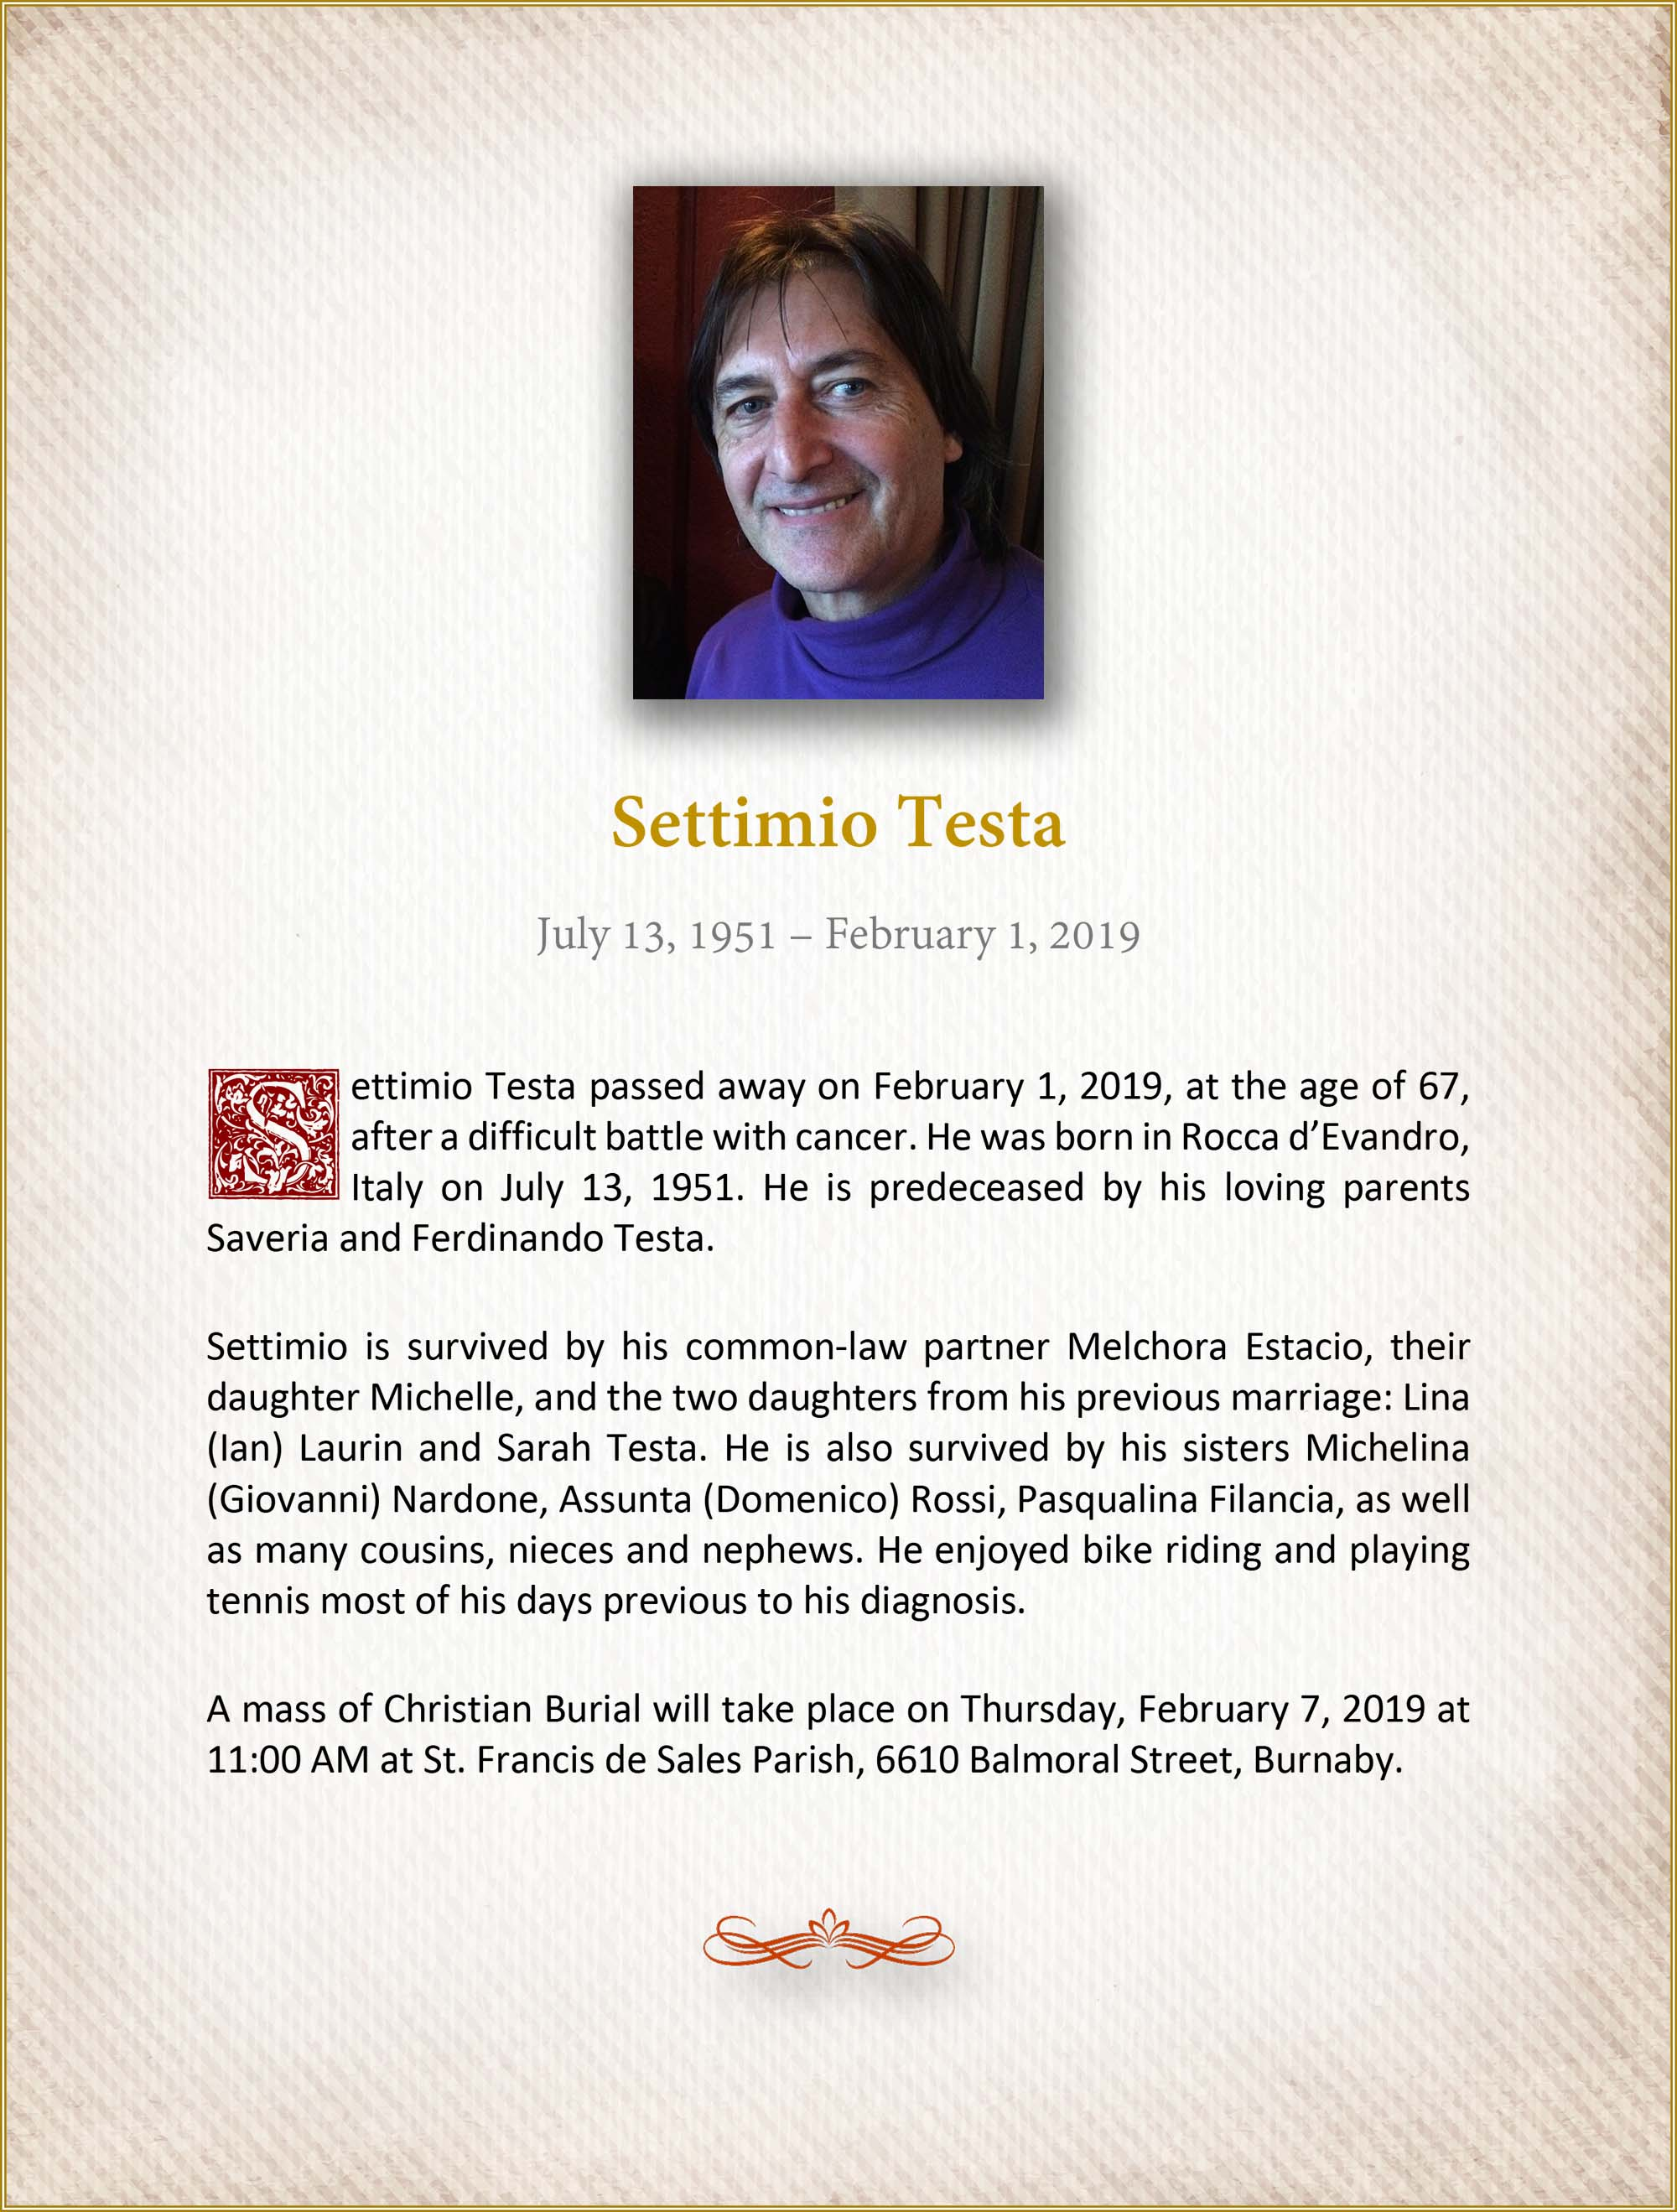 Obituary for Settimio Testa